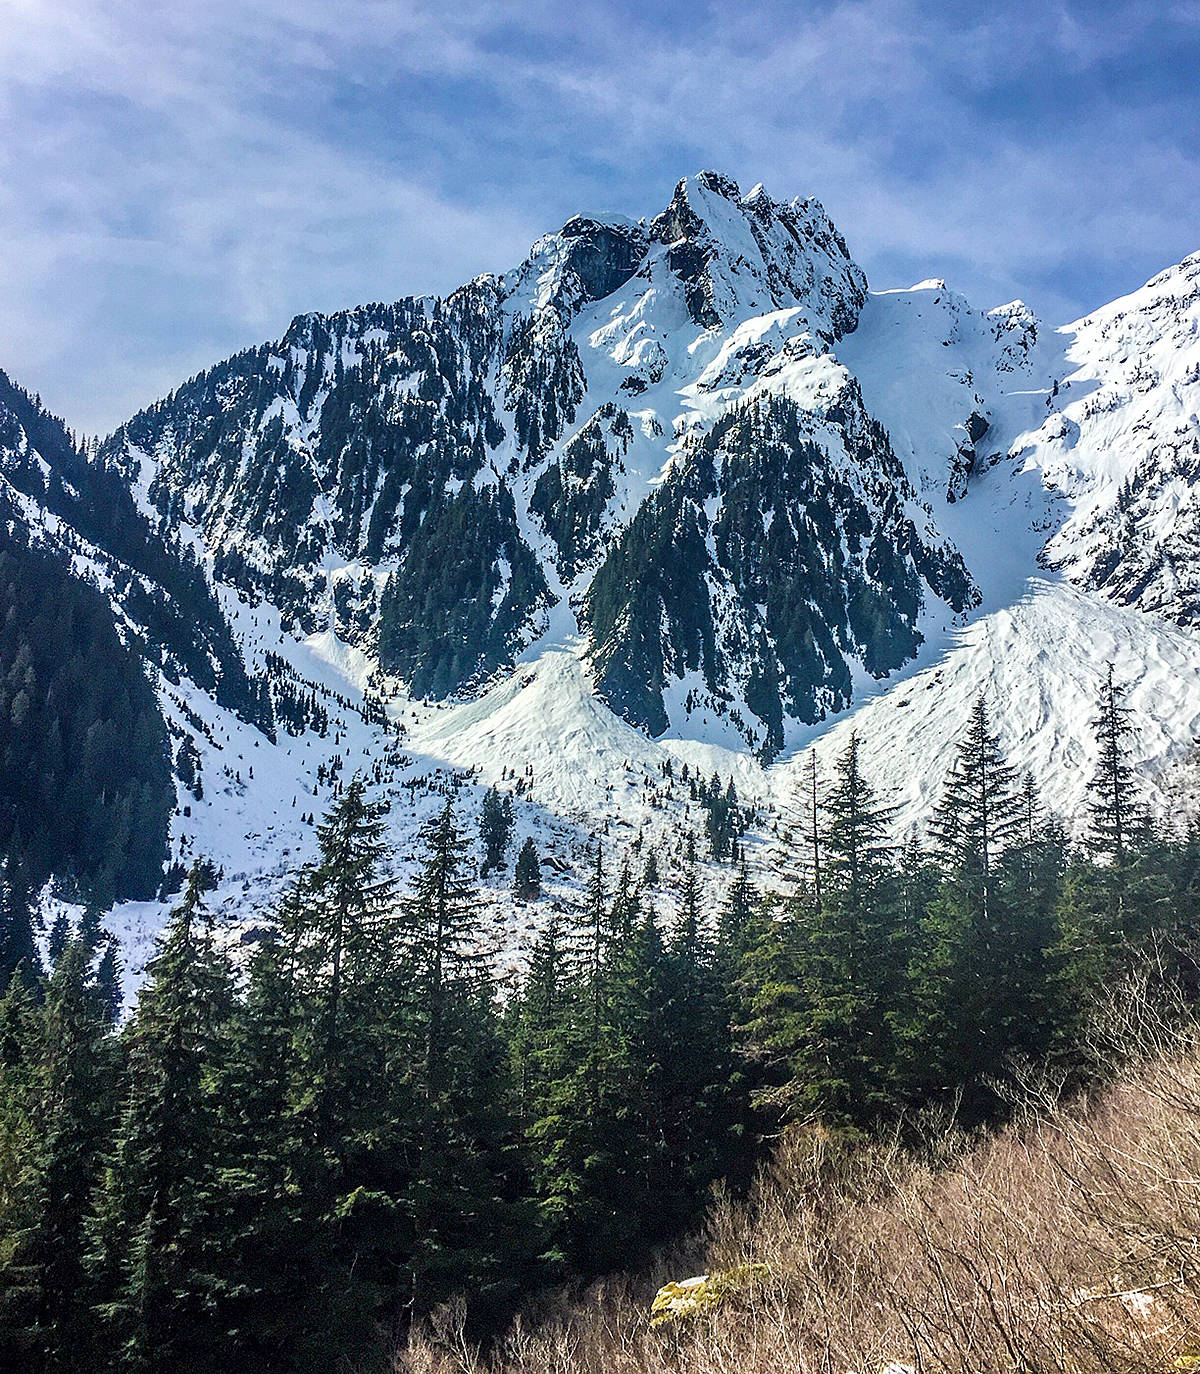 Ron Paley and his neighbours headed up the mountains in Golden Ears Provincial Park this past Saturday, March 13. He offers some safety tips for those considering a similar trek. (Special to The News)